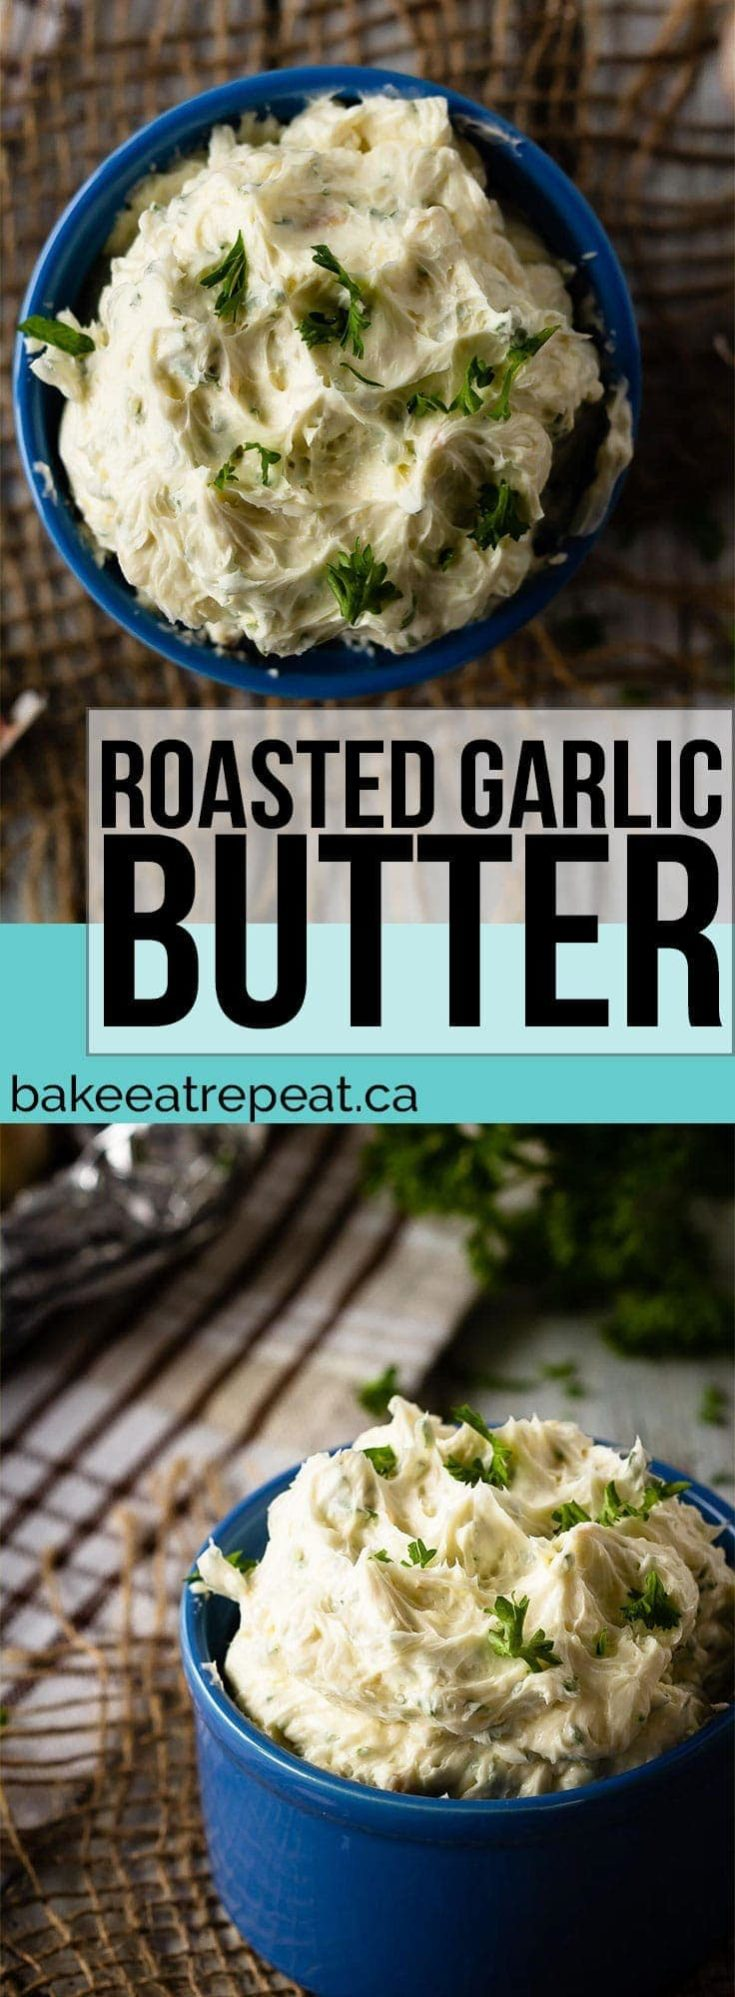 This roasted garlic butter is so easy to make and is fantastic served with fresh bread or dinner rolls, or used to make garlic toast!